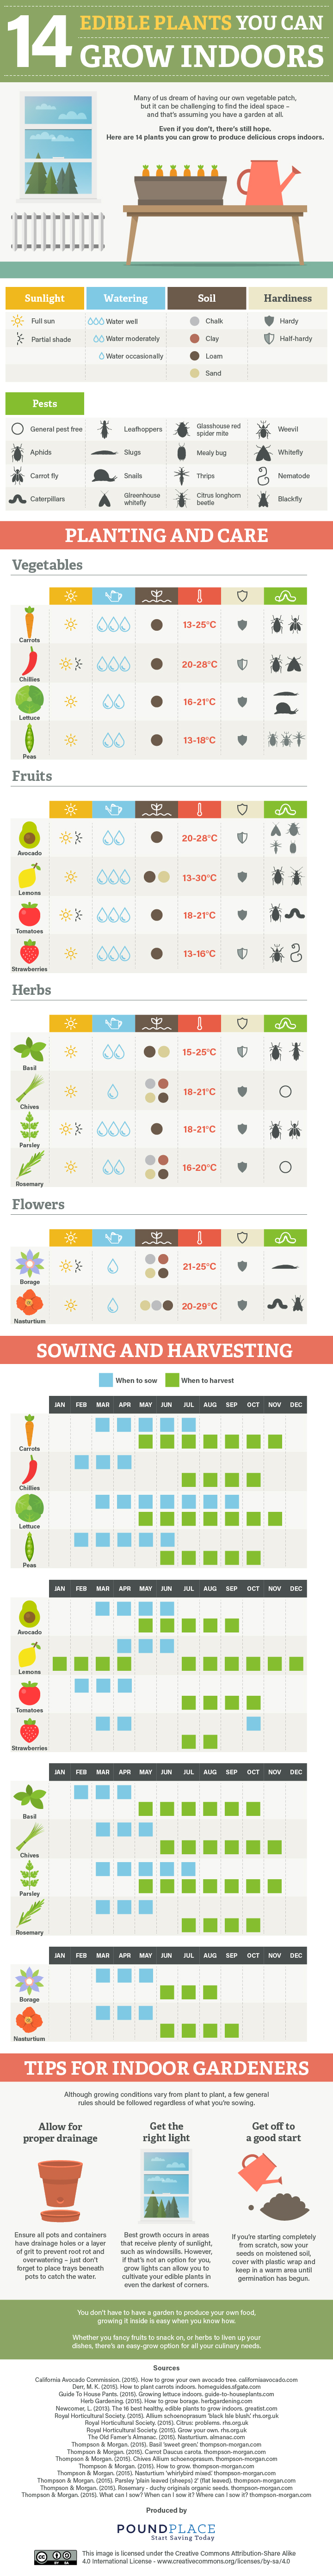 14 Edible Plants You Can Grow Indoors - infographic